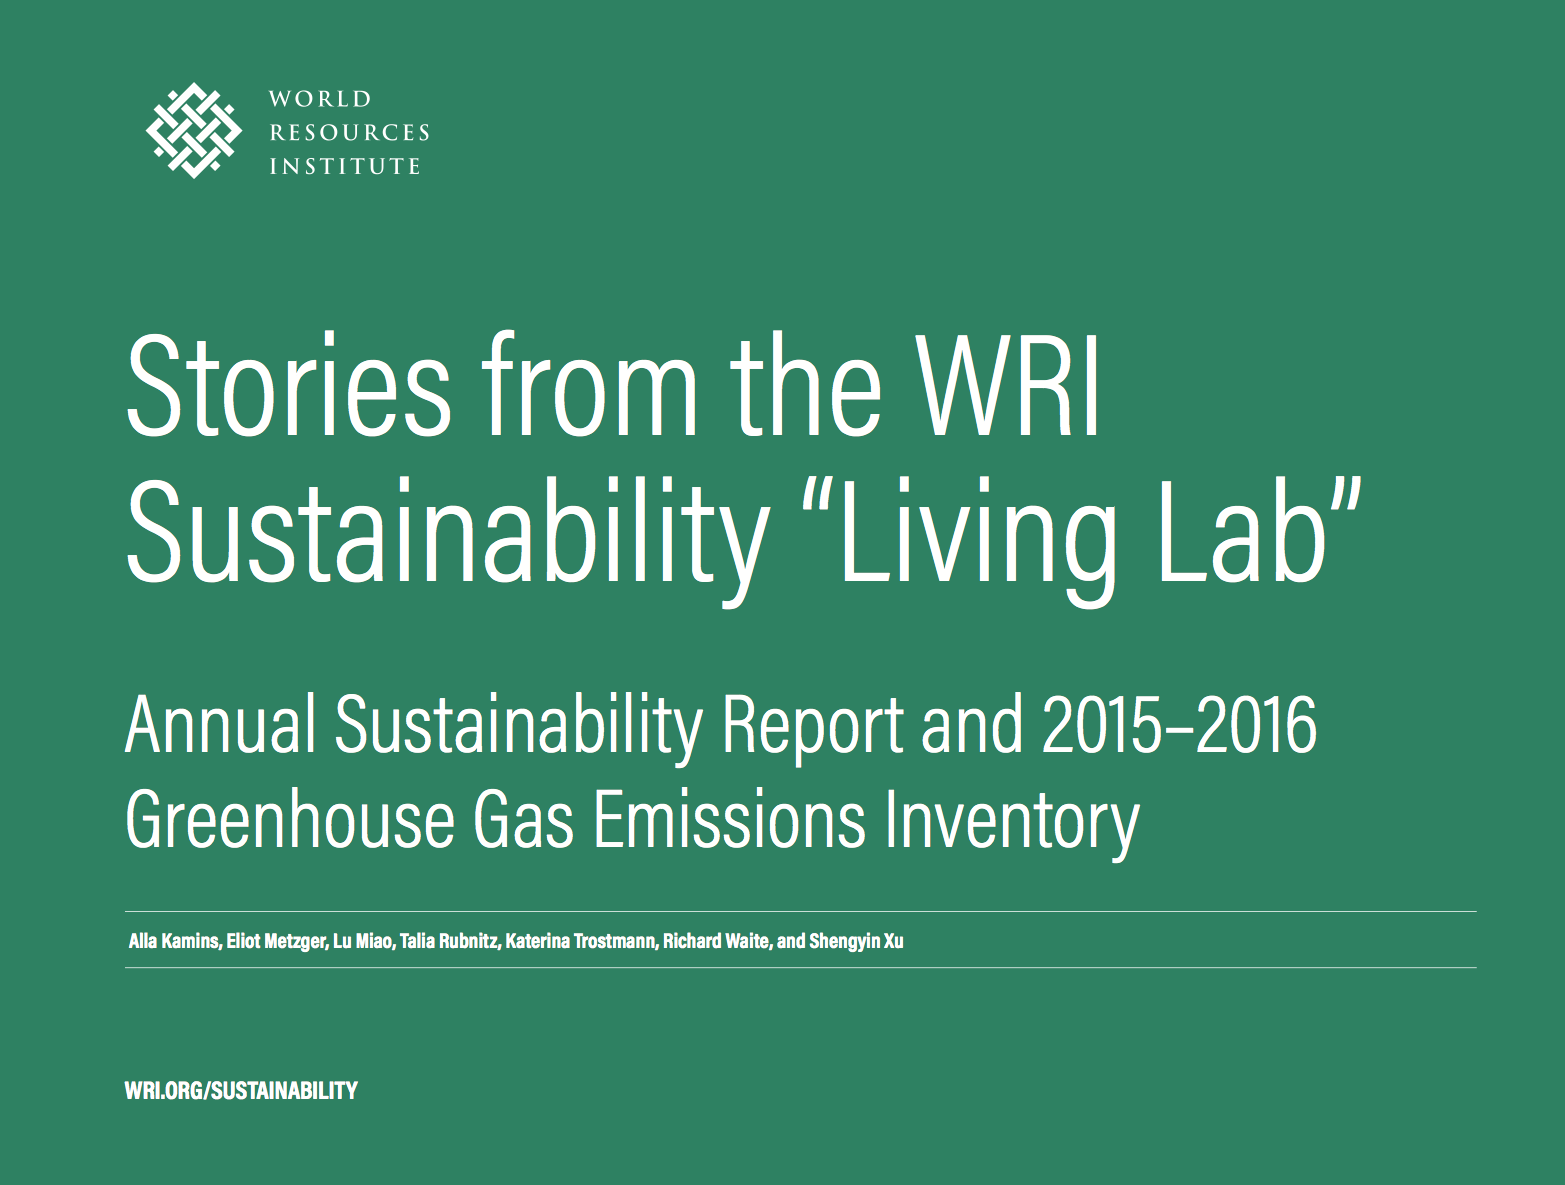 Stories from the WRI Sustainability Living Lab